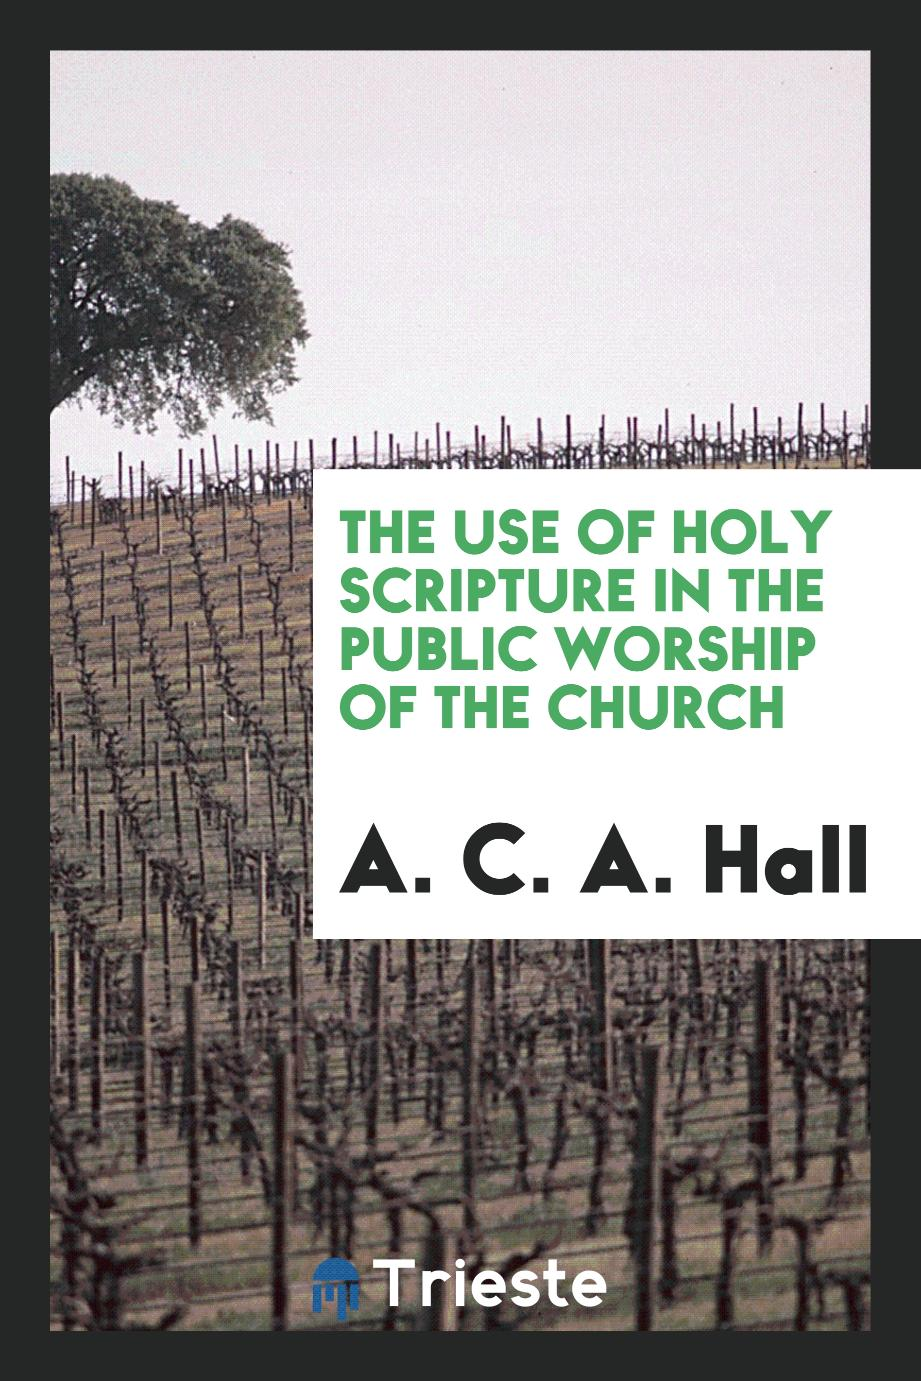 The use of Holy Scripture in the public worship of the church